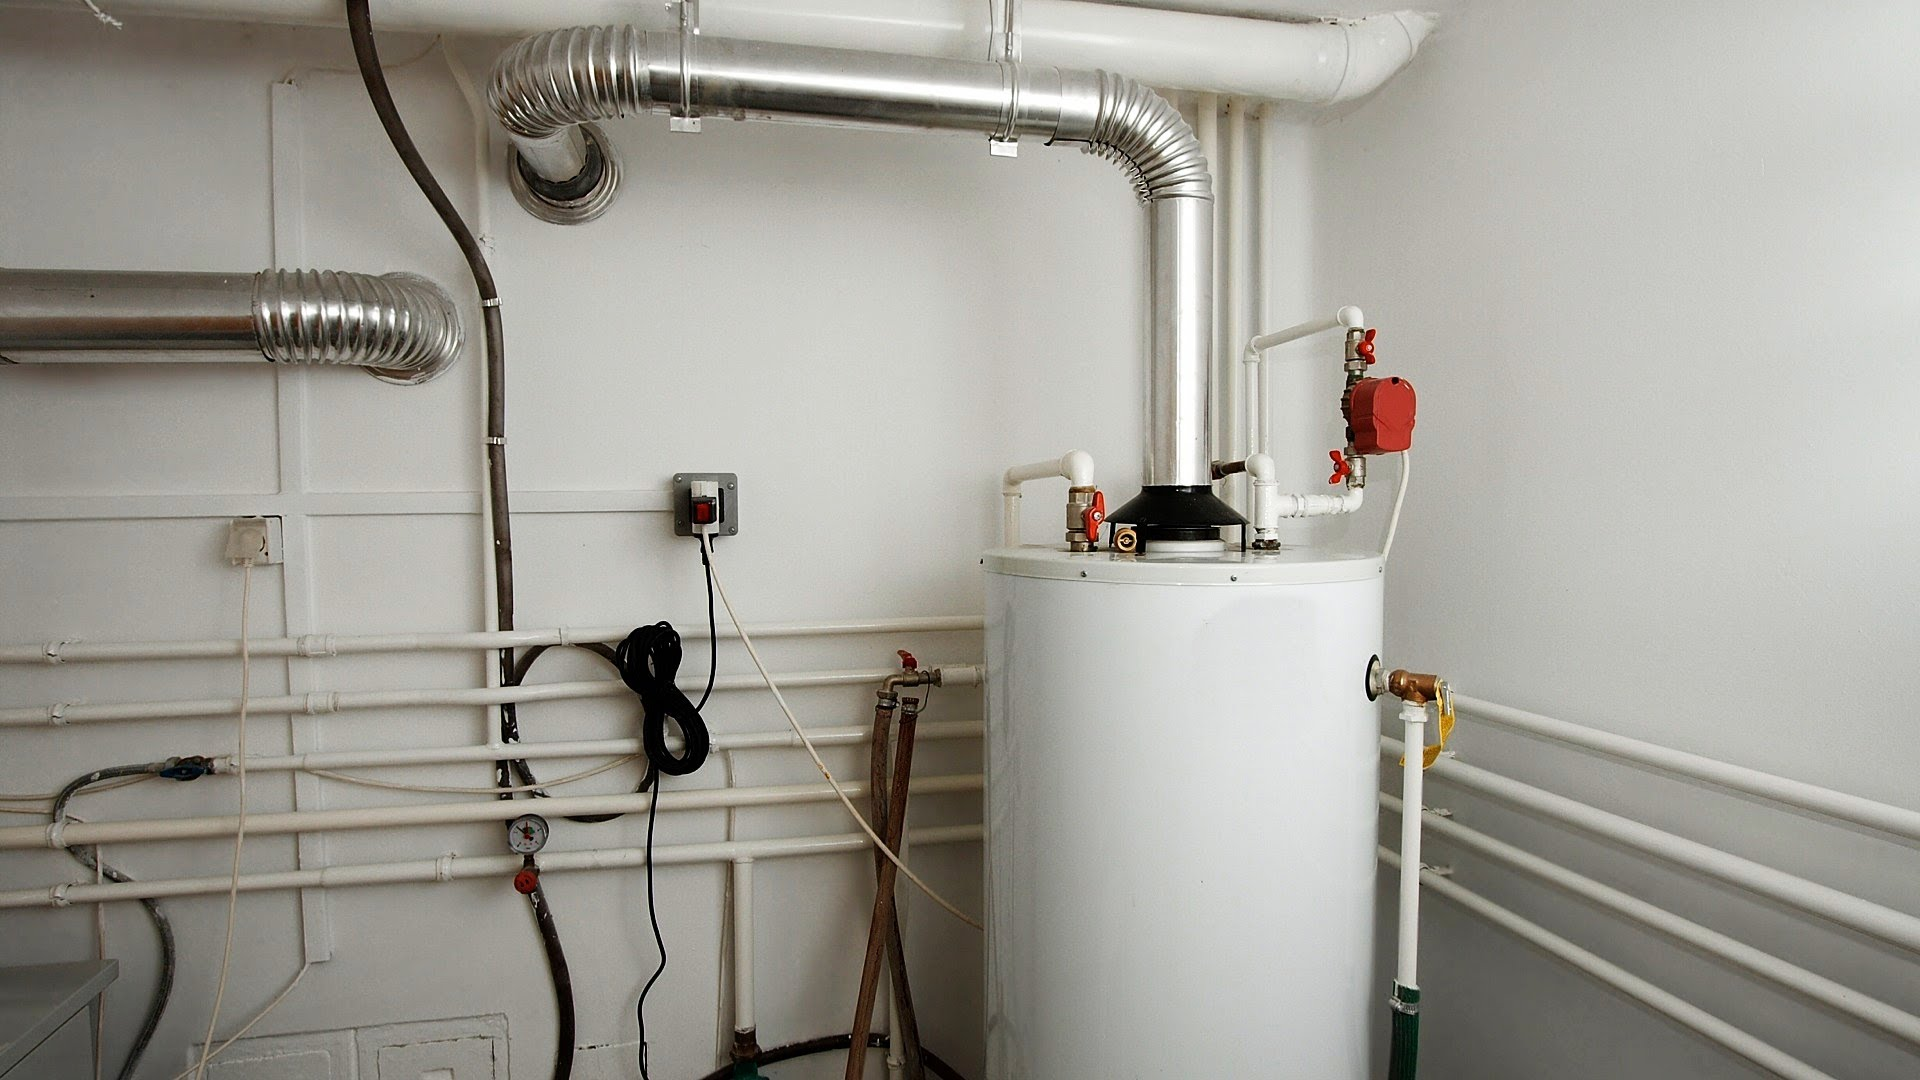 Palm Beach Water Heater Installers - Water Heater Installation, Water Heaters, tankless & gas repairs, expansion tanks- 18-We do Water Heater Installation and Repair, Natural Gas Water Heaters, 24/7 Emergency Water Heater Service and Maintenance, Hybrid Water Heaters, Water Heater Expansion Tank, Commercial Water Heater Services, Tankless Water Heaters Installations, and more